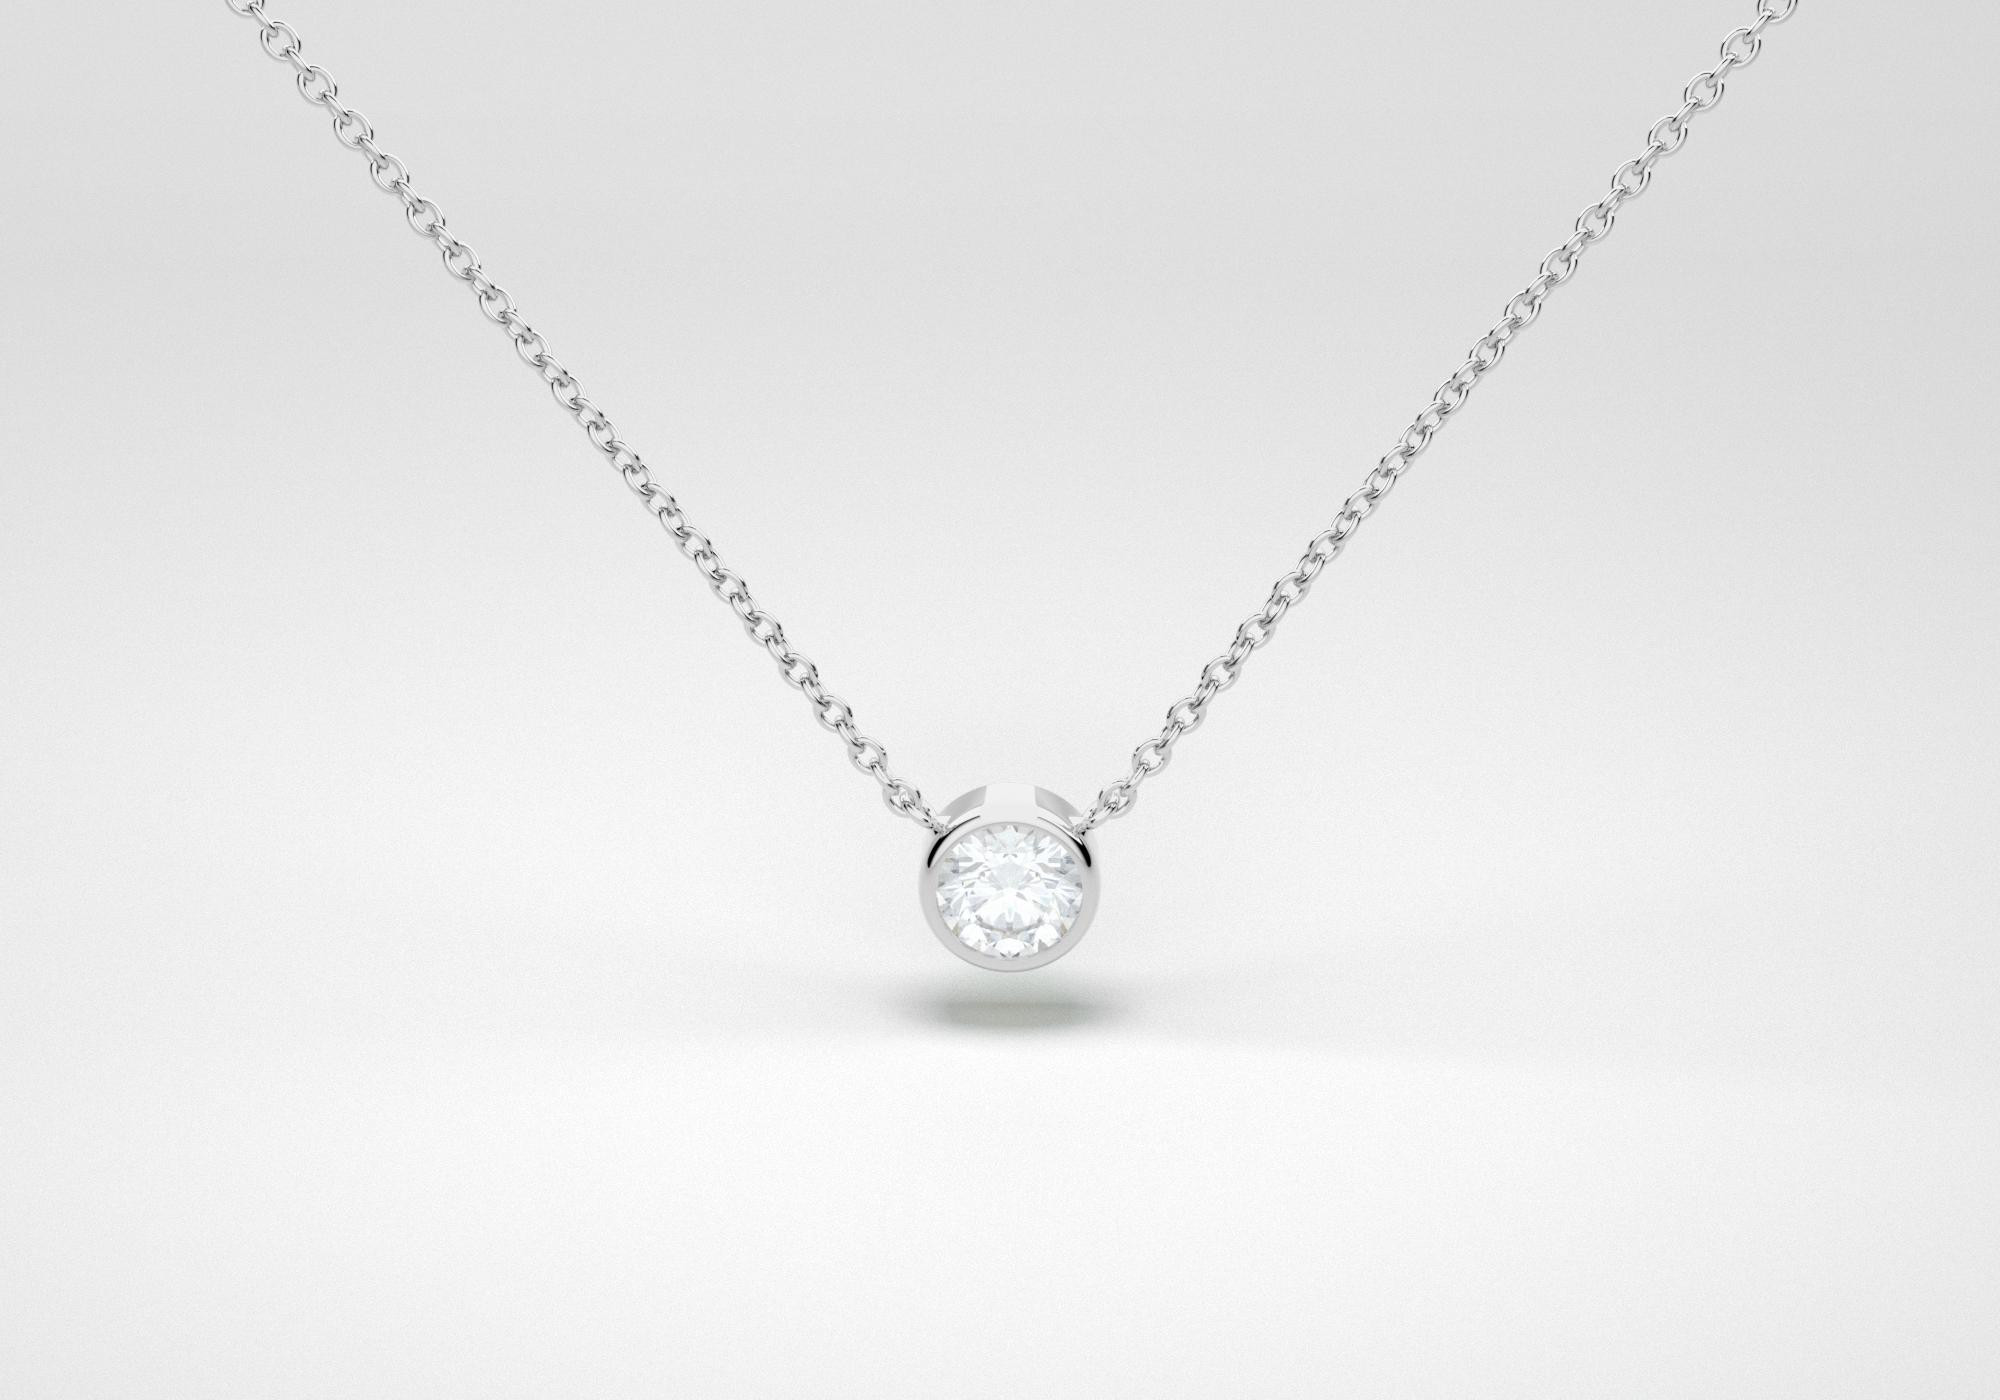 The One Necklace - White - White Gold 18 Kt